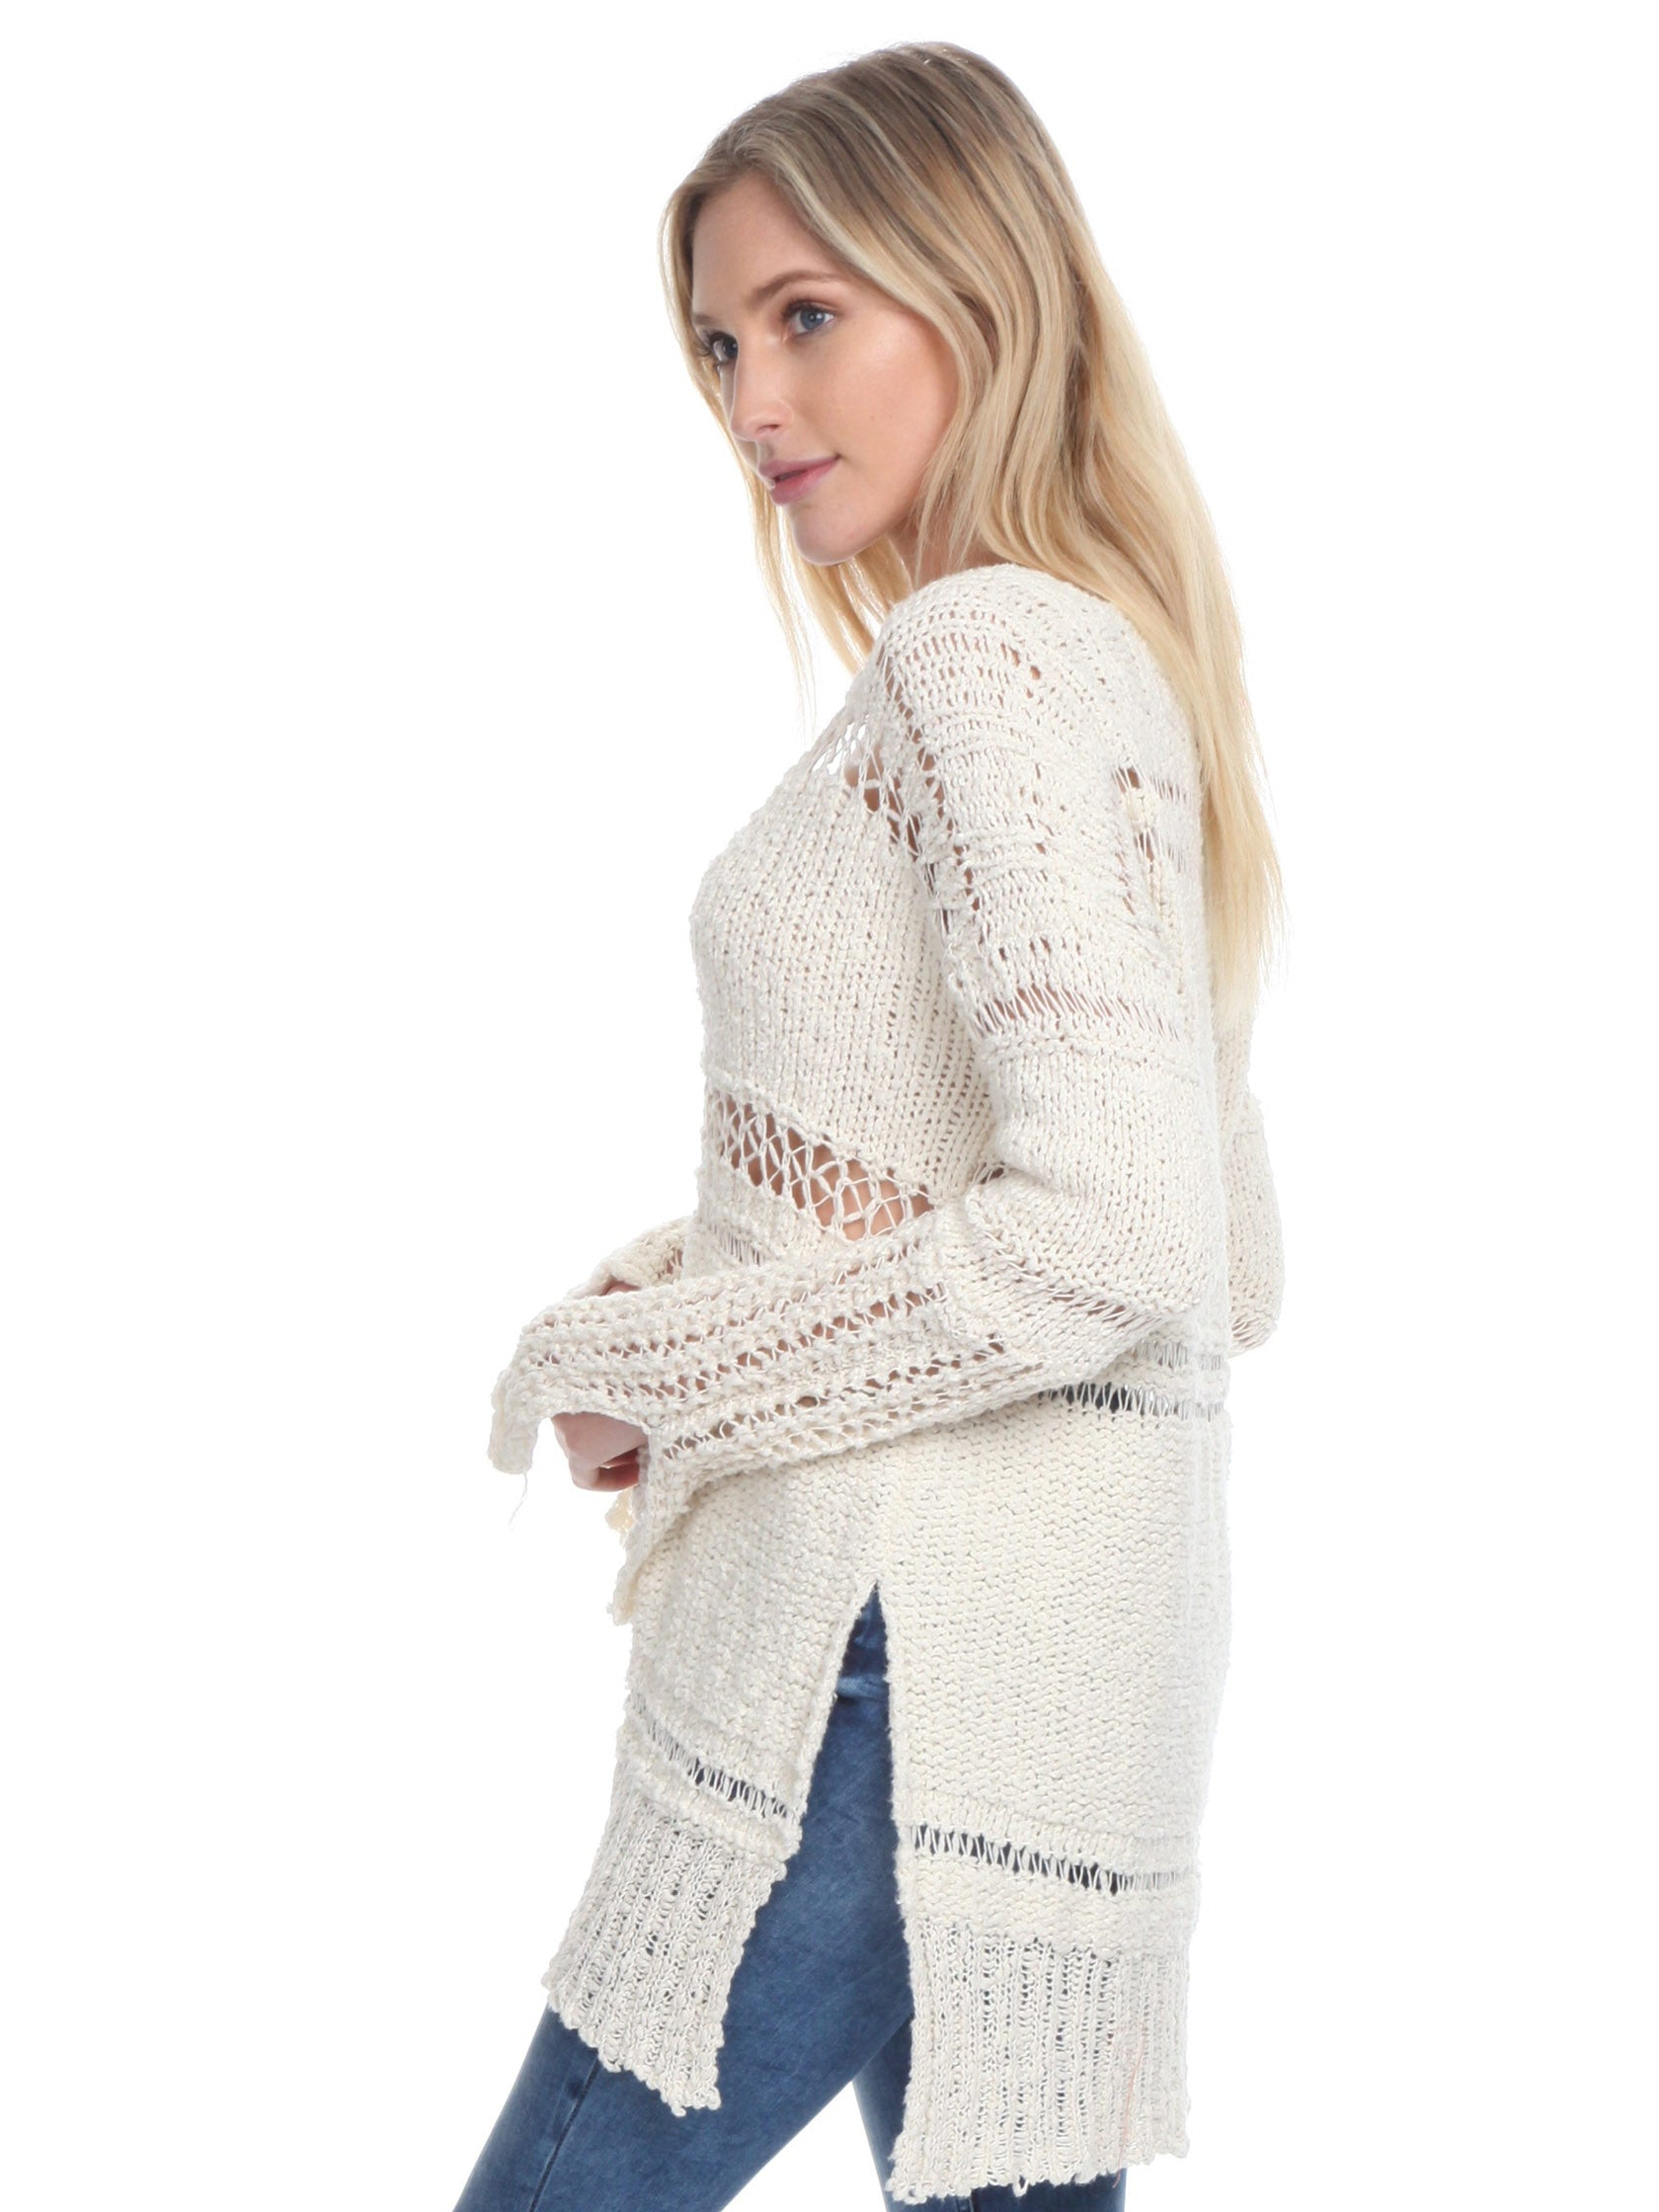 Women wearing a sweater rental from Free People called Belong To You Sweater